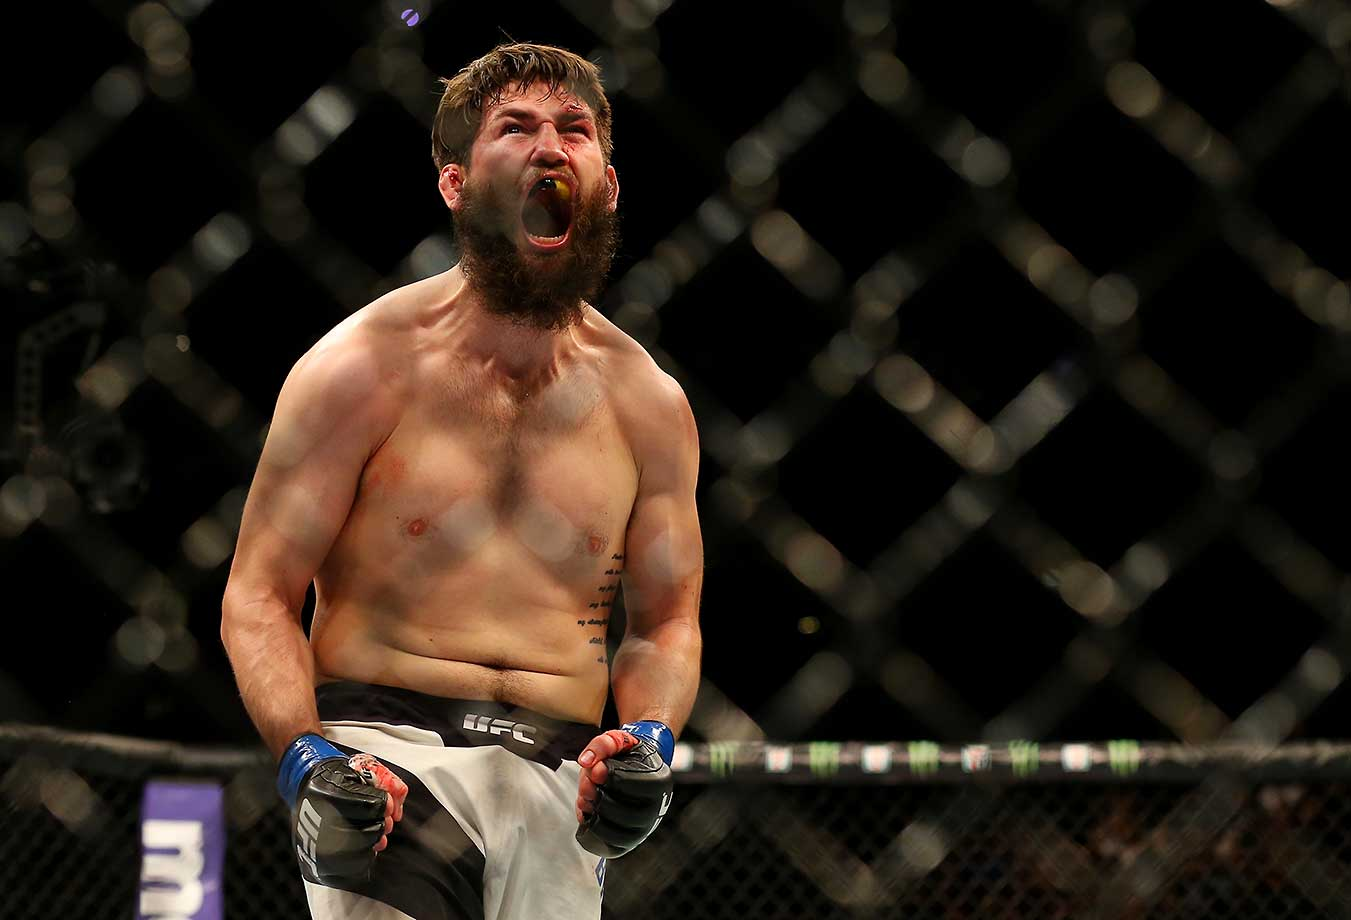 Bryan Barberena celebrates his submission victory over Sage Northcutt in their welterweight bout during the UFC Fight Night event at the Prudential Center in Newark, New Jersey.